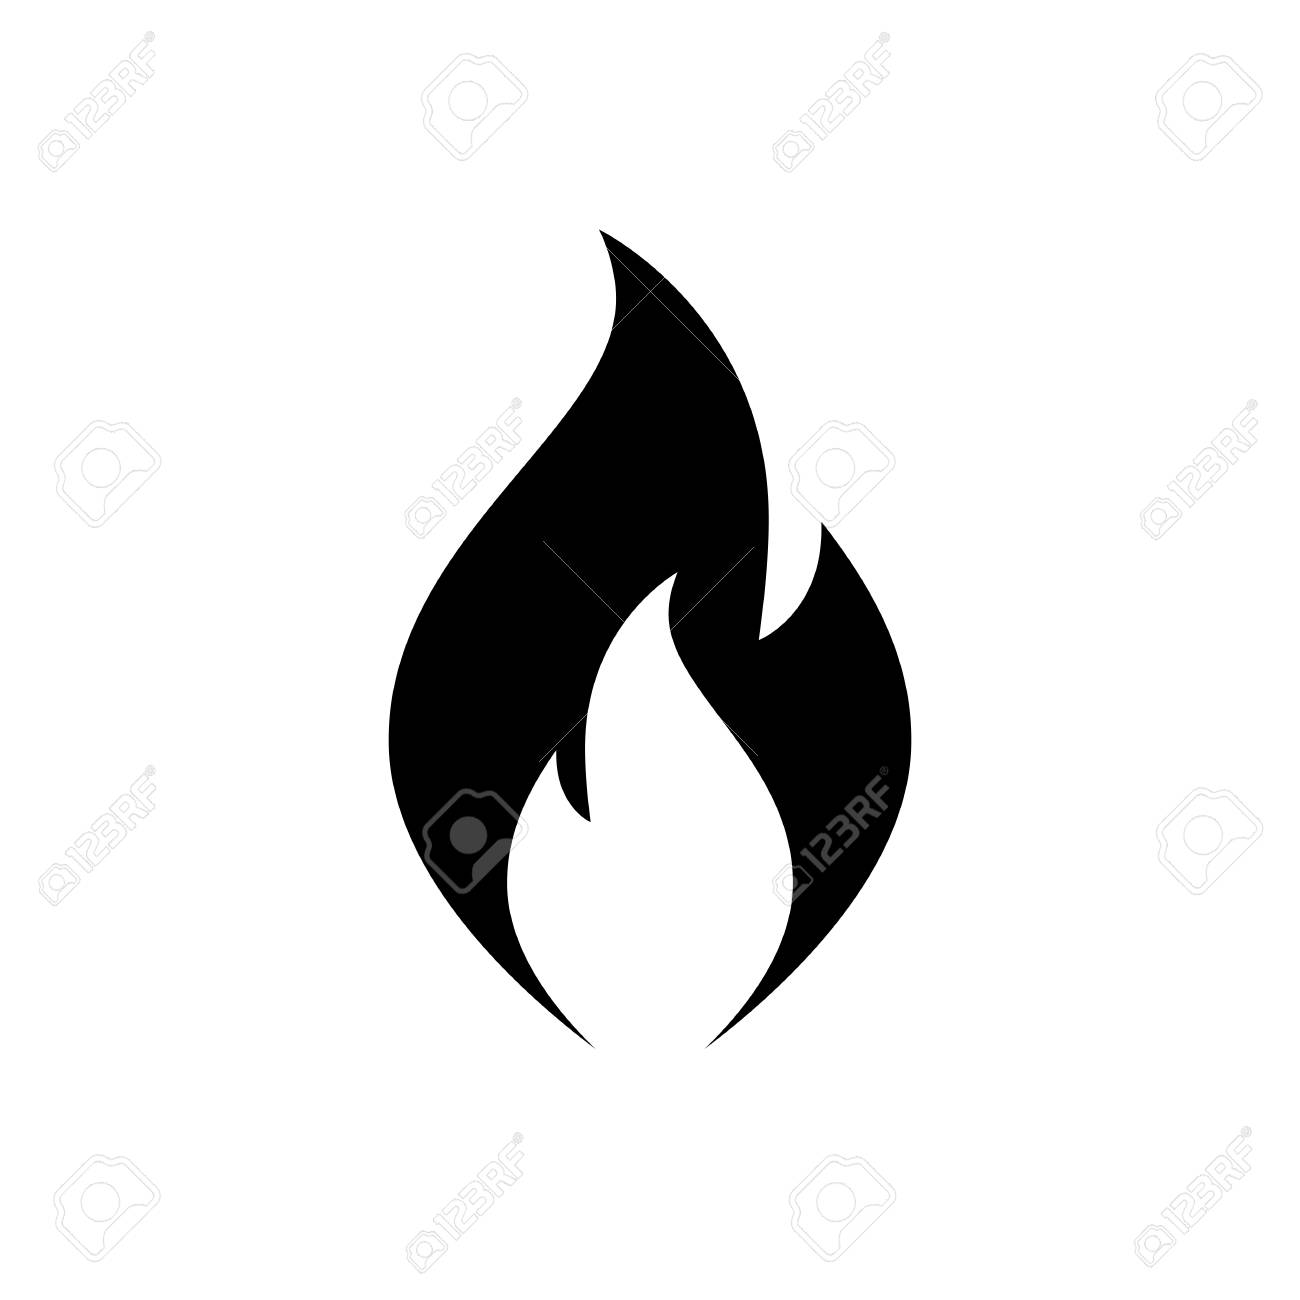 Simple Fire Clipart.